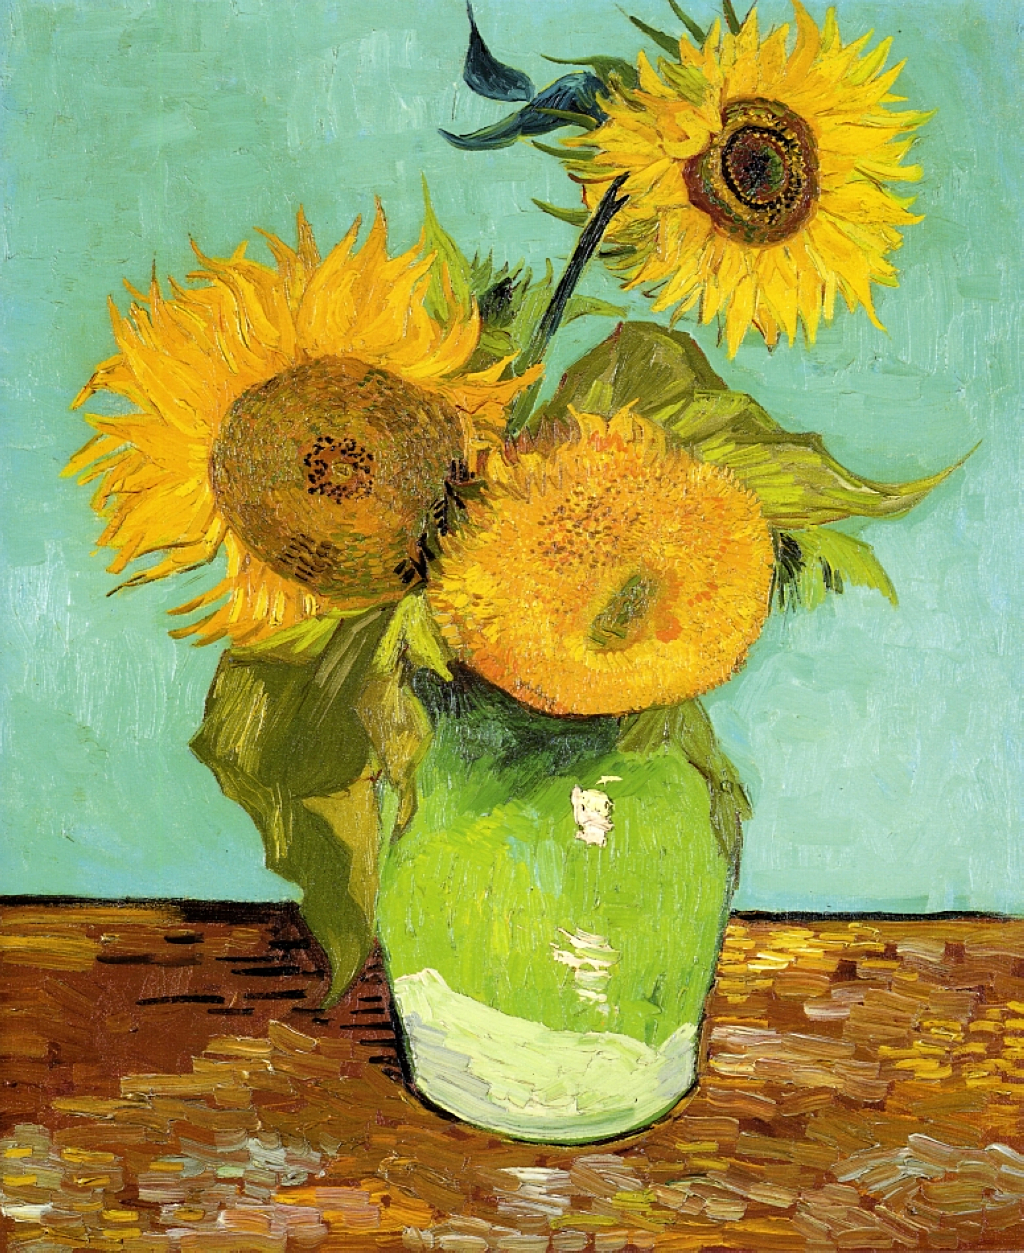 Sunflowers by Vincent Van Gogh, 1888